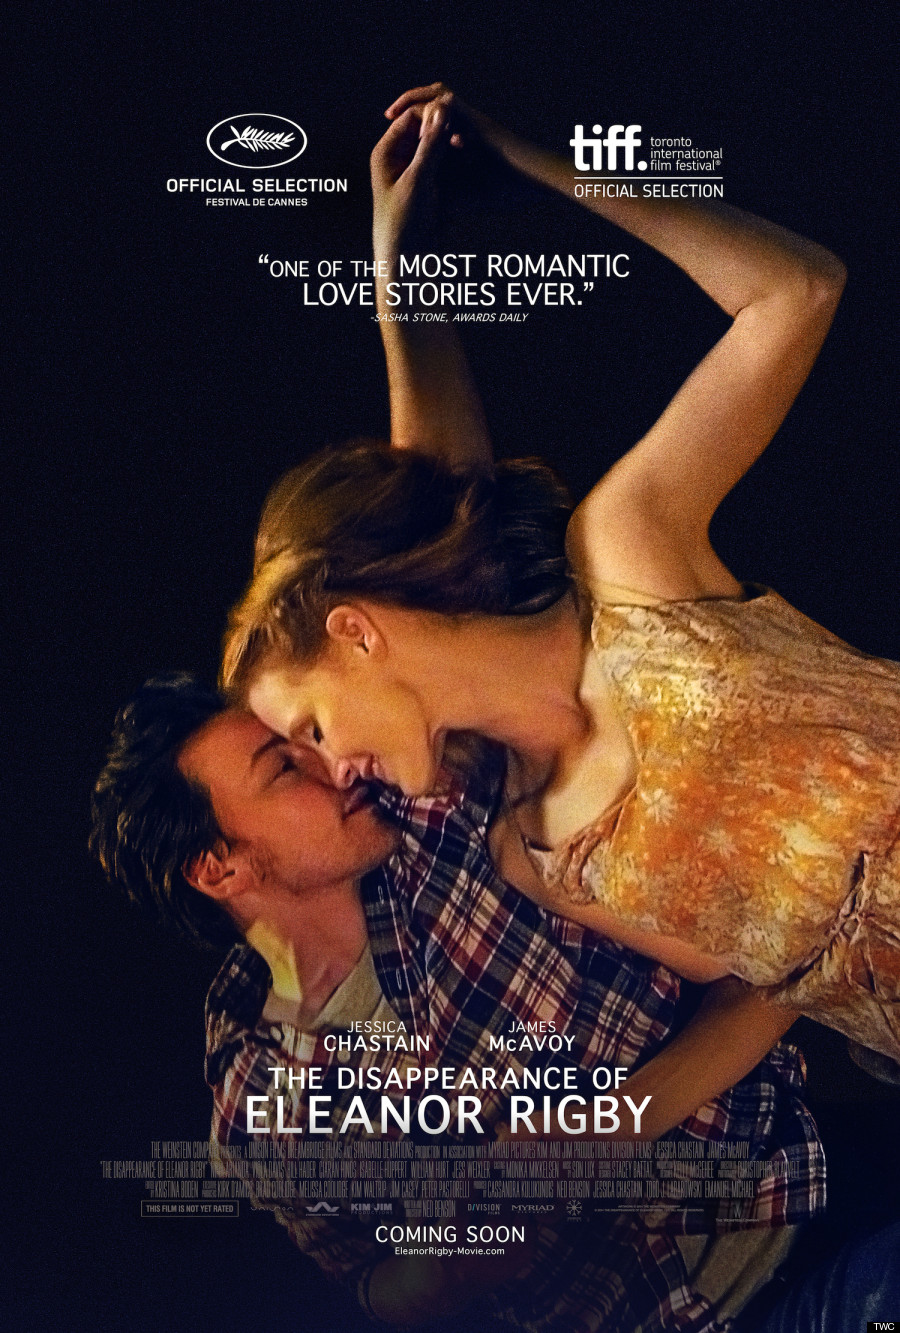 THE DISAPPEARANCE OF ELEANOR RIGBY-Official Poster Banner PROMO-28JULHO2014-01